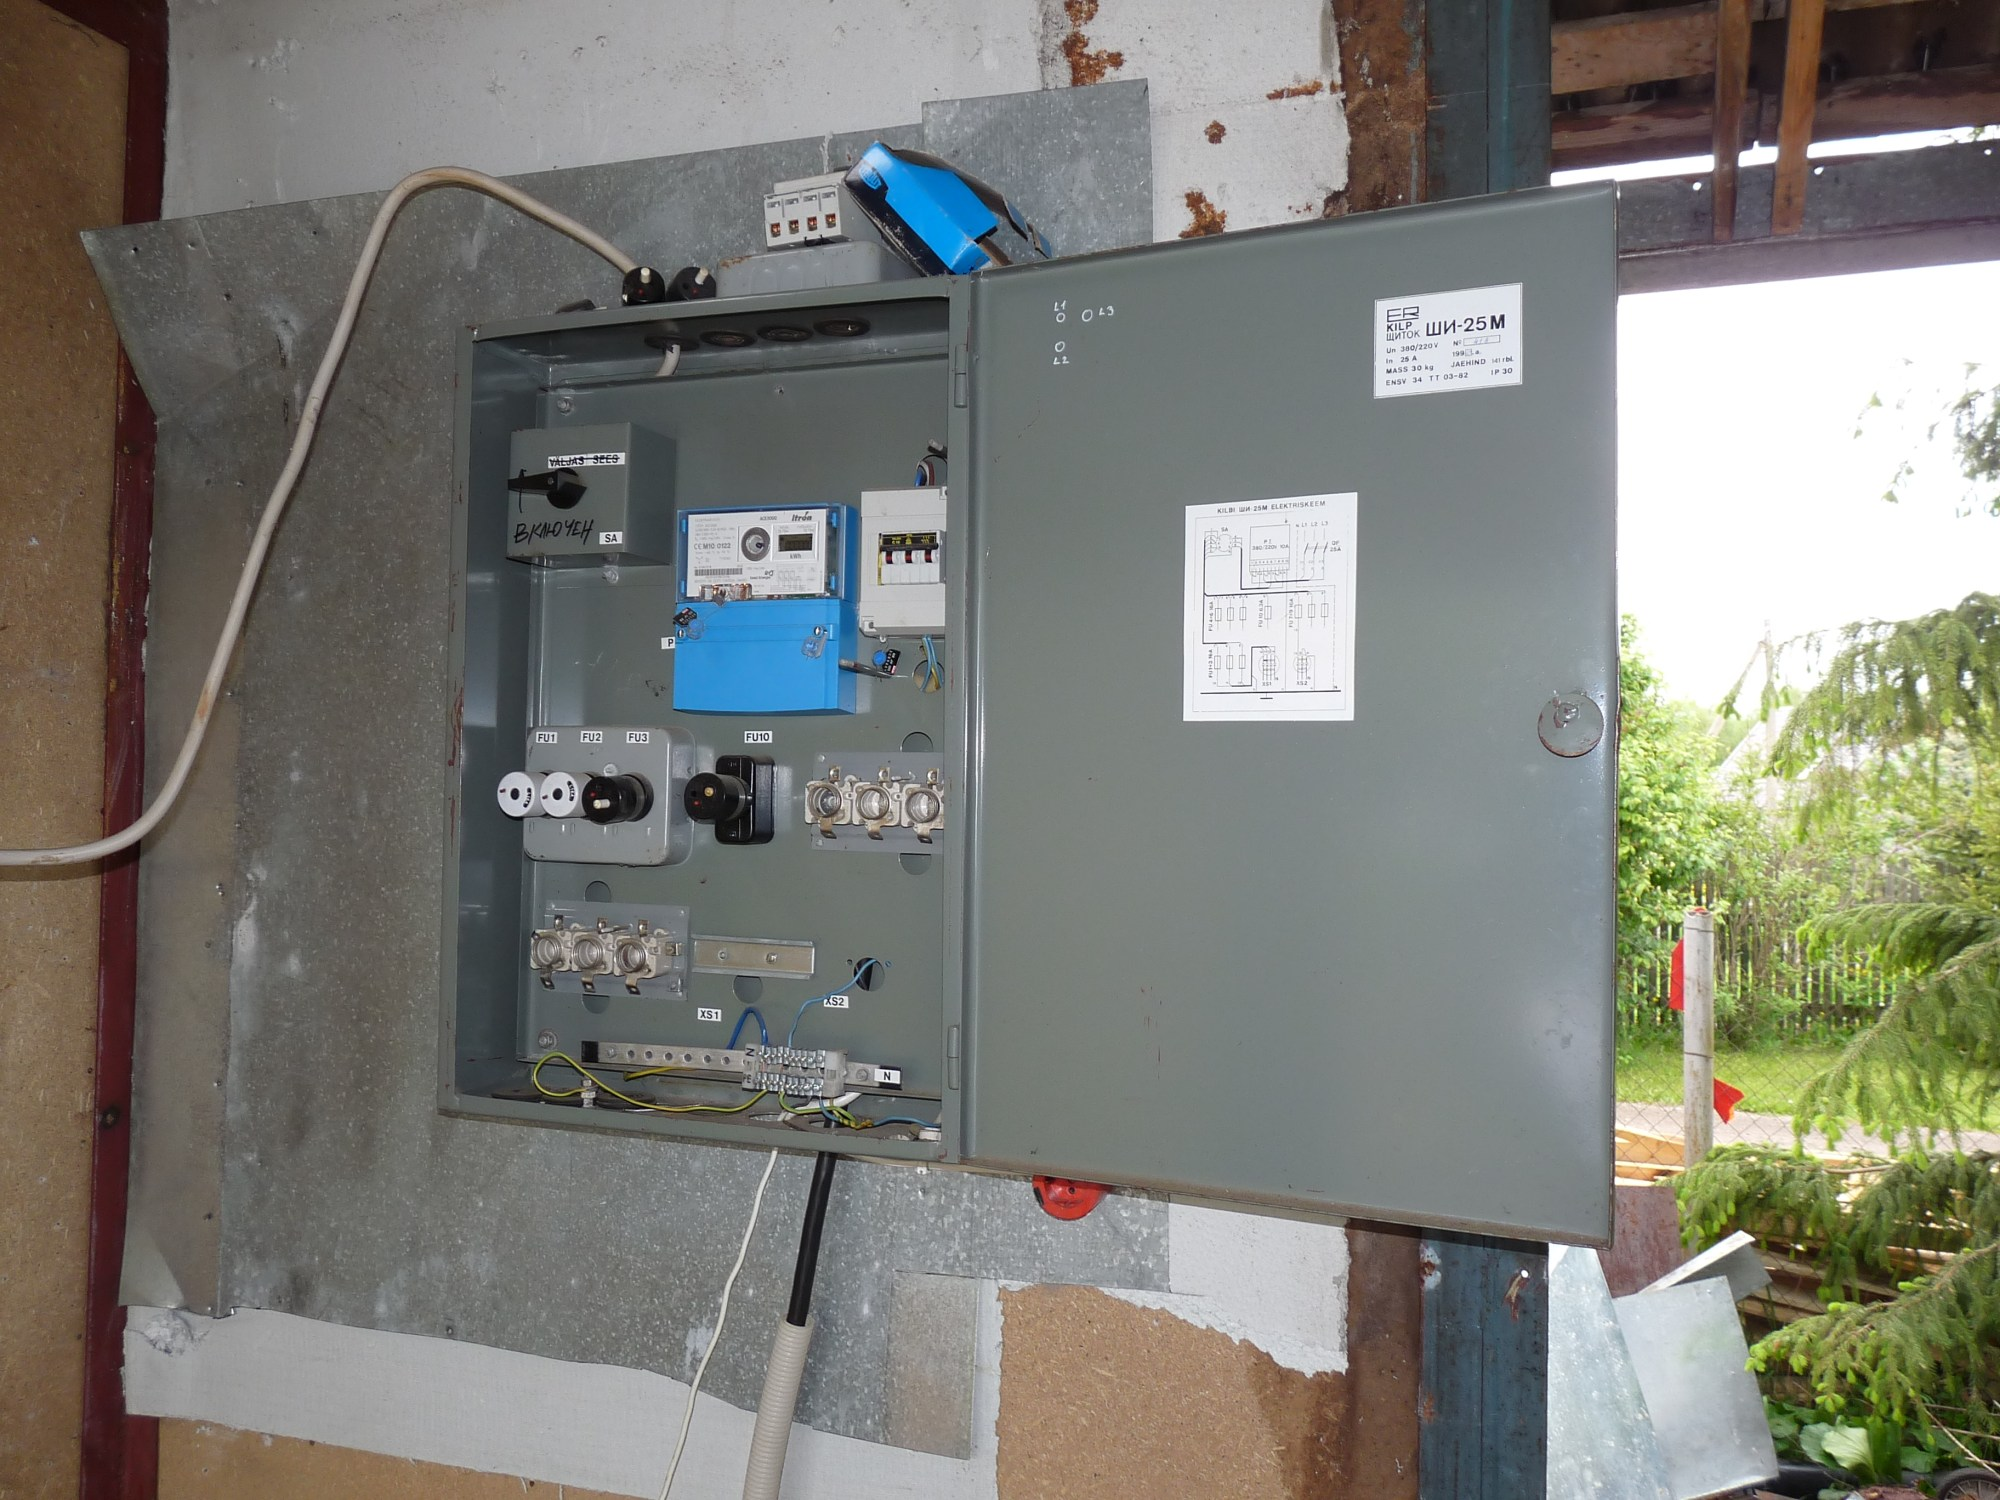 hight resolution of fuse box in garage wiring diagram expert fuse box garage shed fuse box in garage